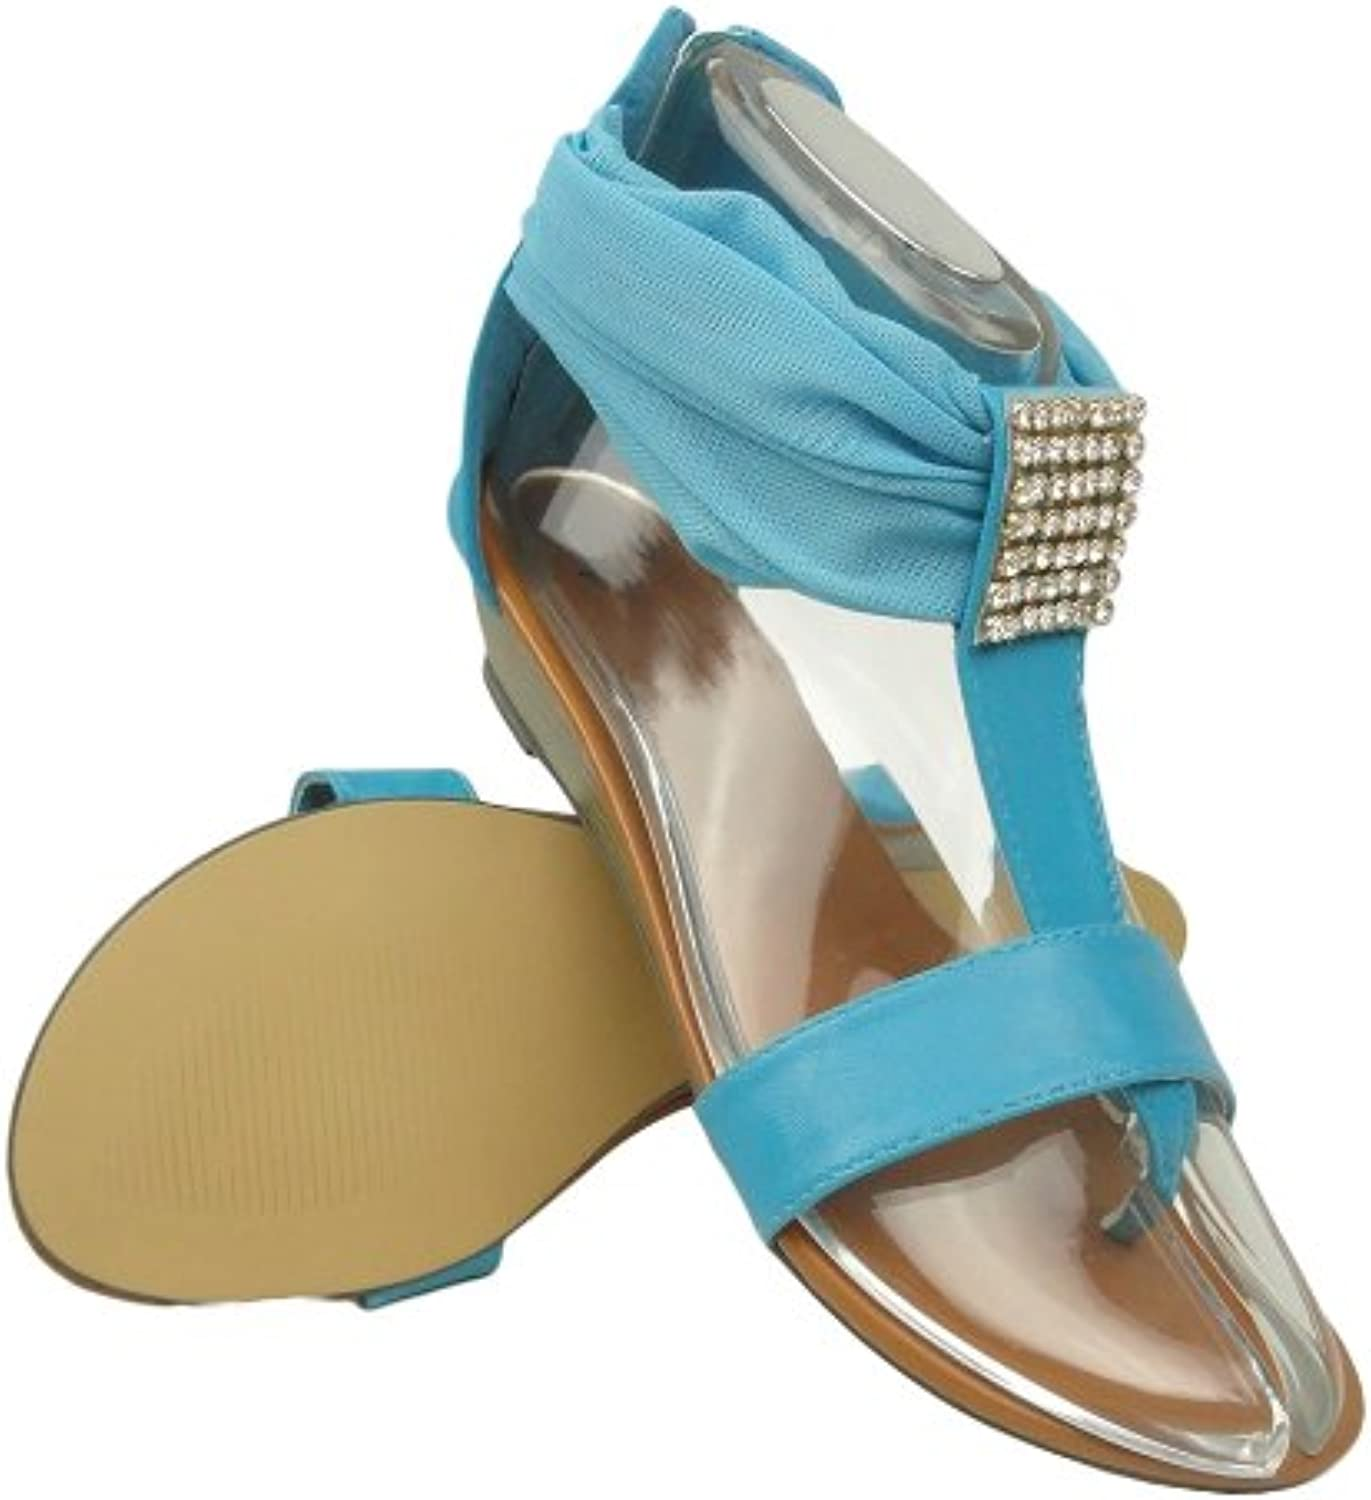 KSC Womens Flat T-Strap Mesh Thong Sandals bluee Rhinestones Back Zipper